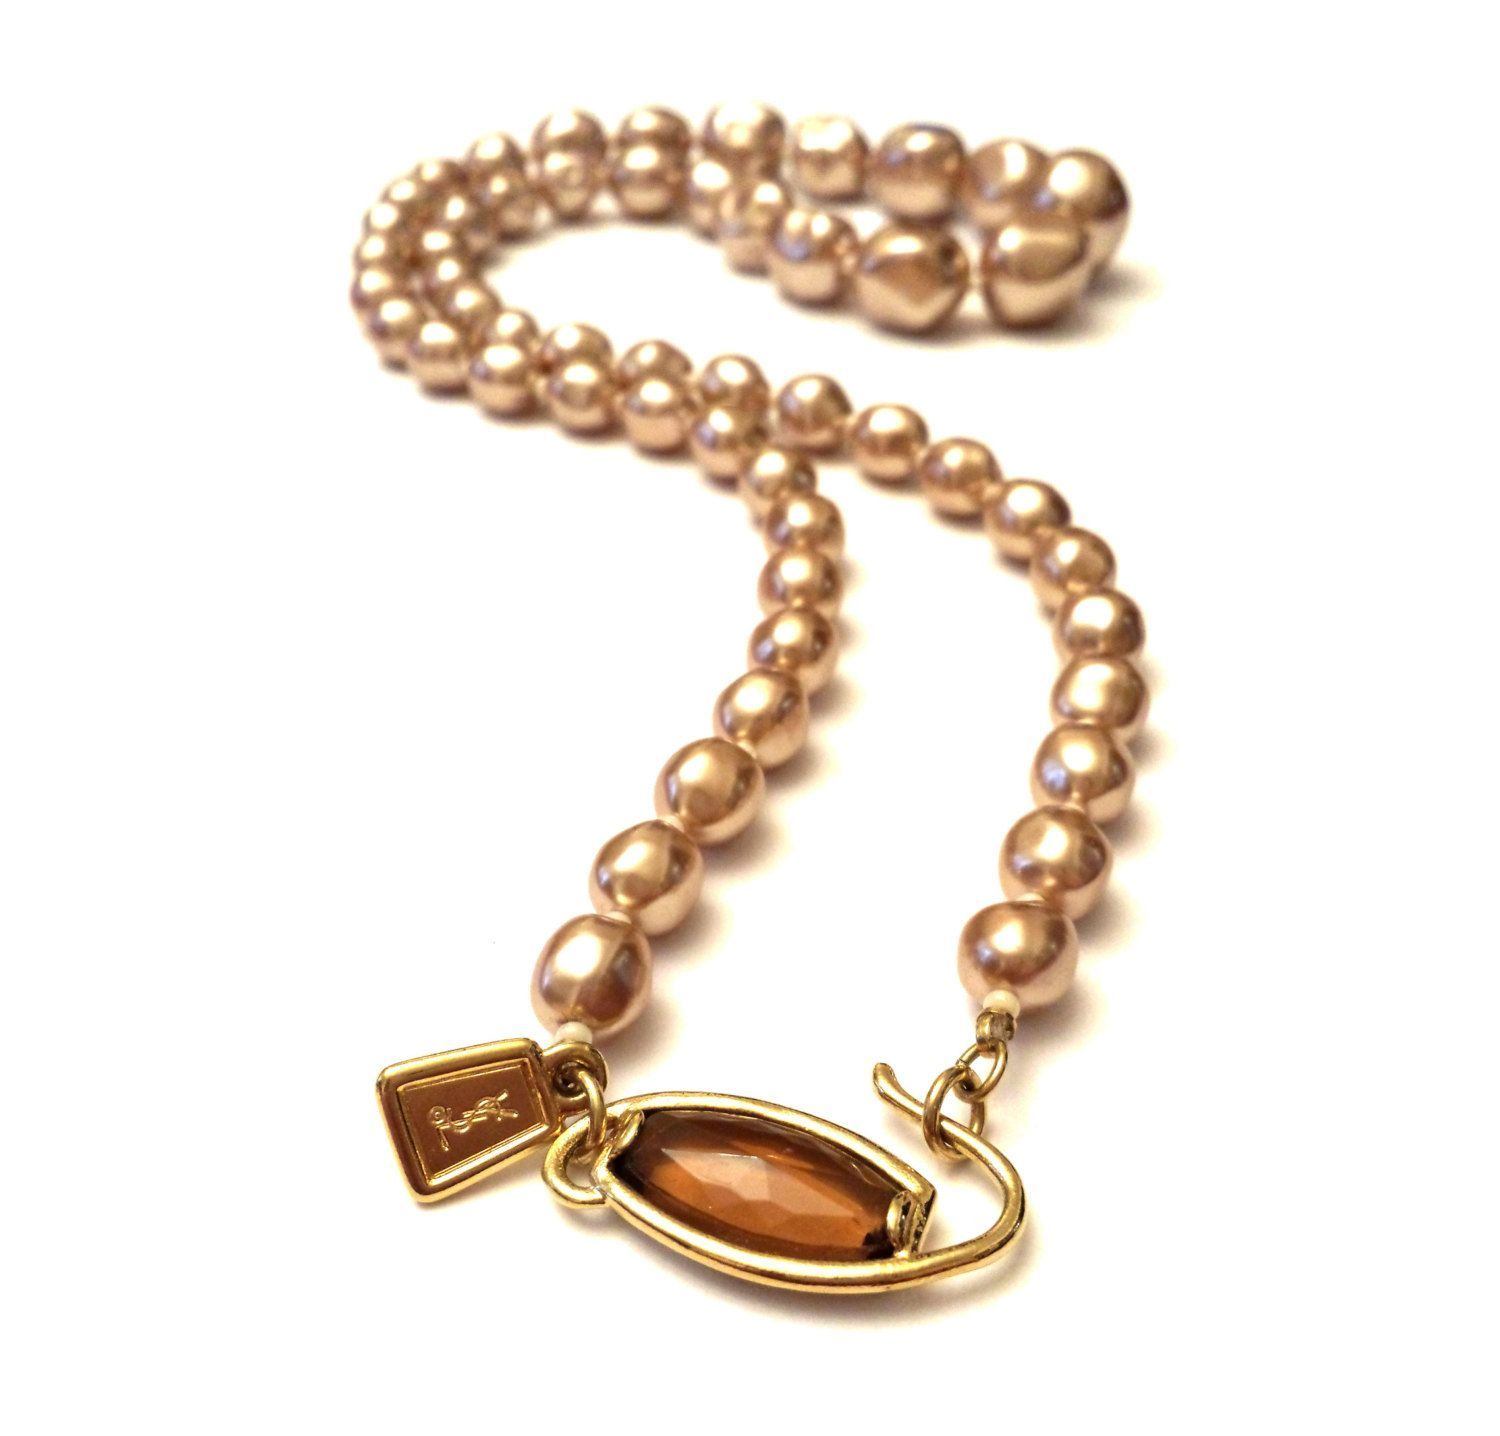 YSL Pearl Necklace Yves Saint Laurent Baroque Pearls Graduated